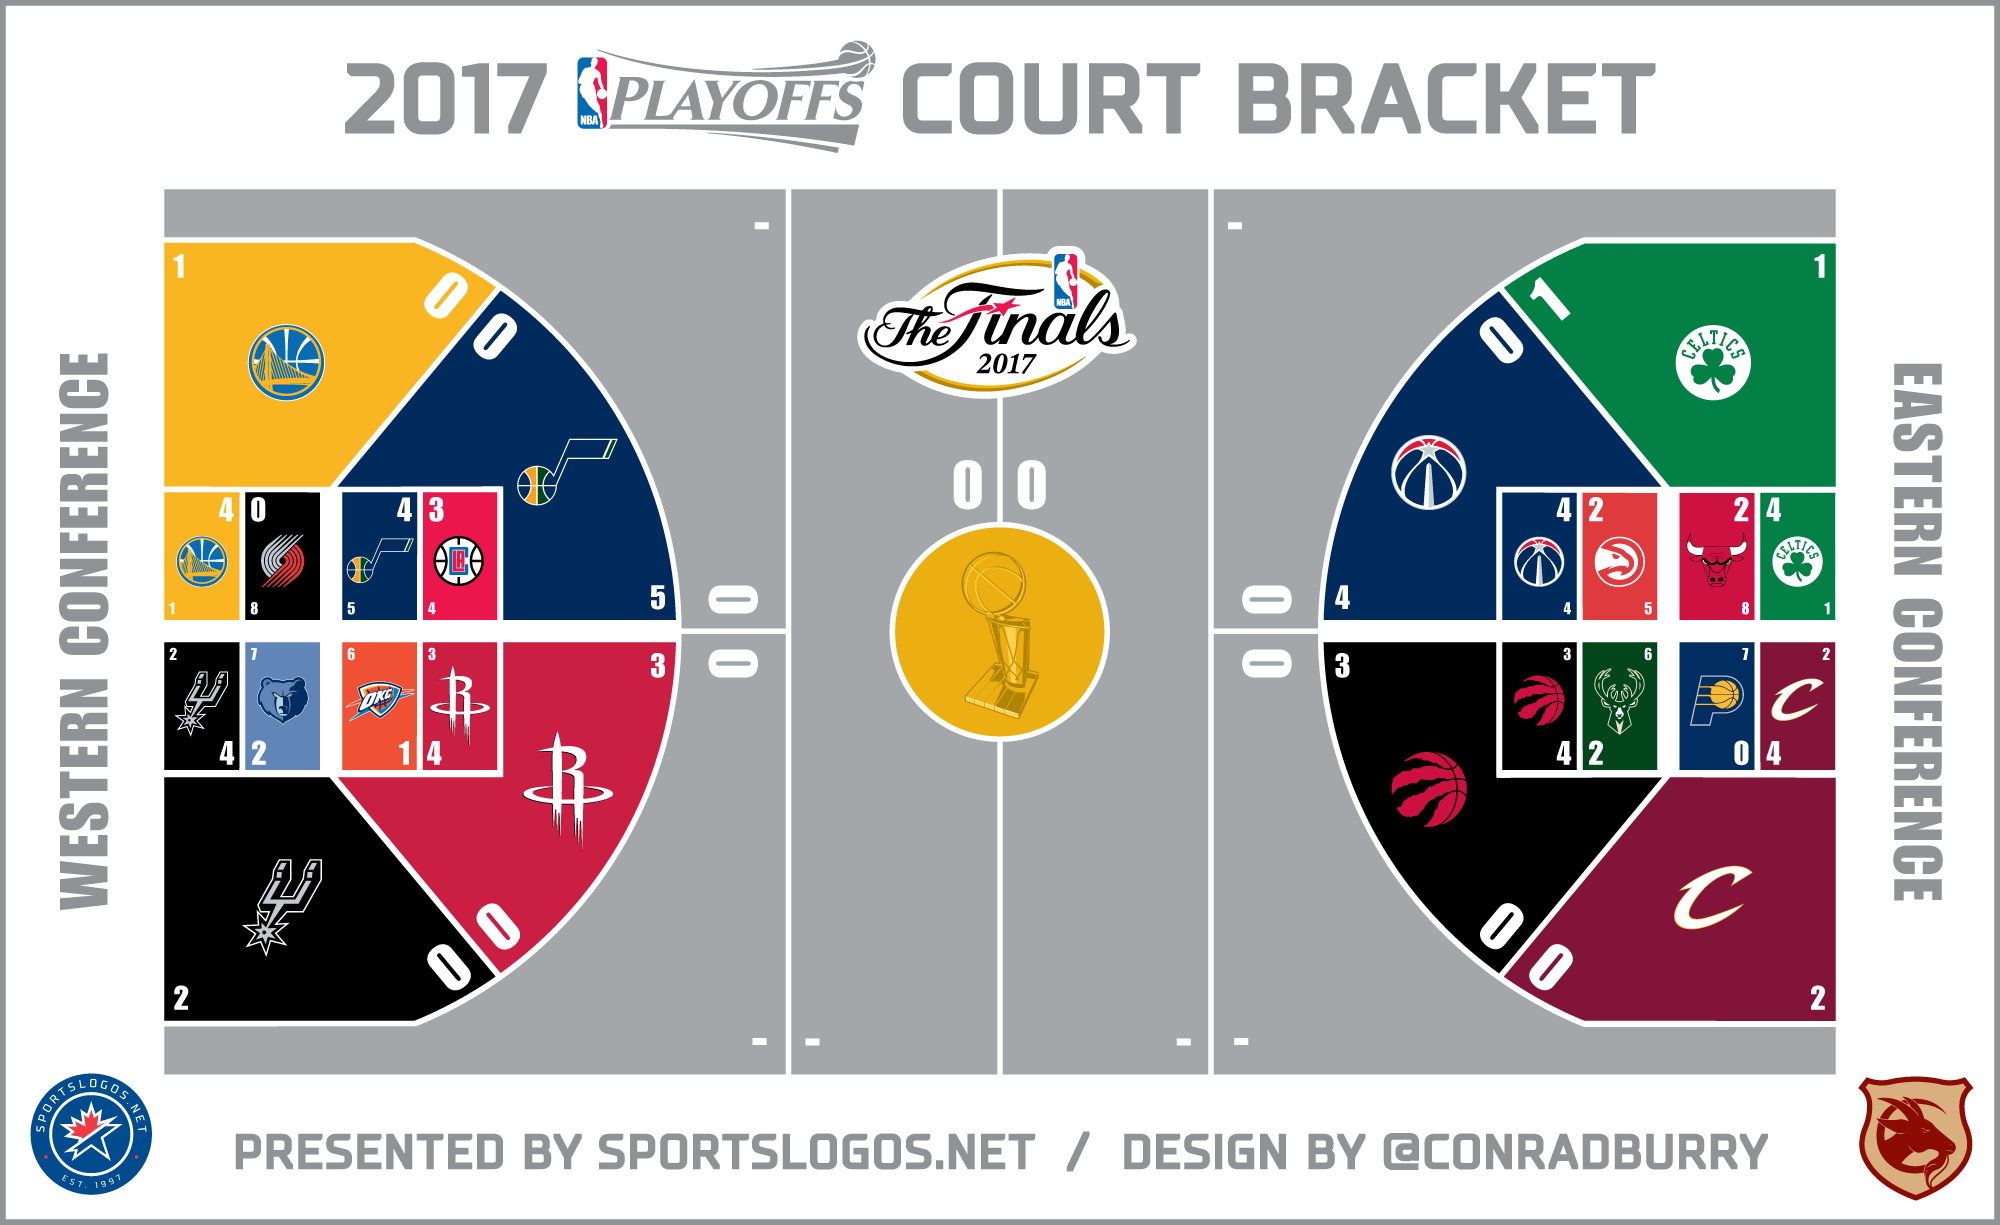 2017 Nba Playoffs Court Bracket Conference Semifinals Chris